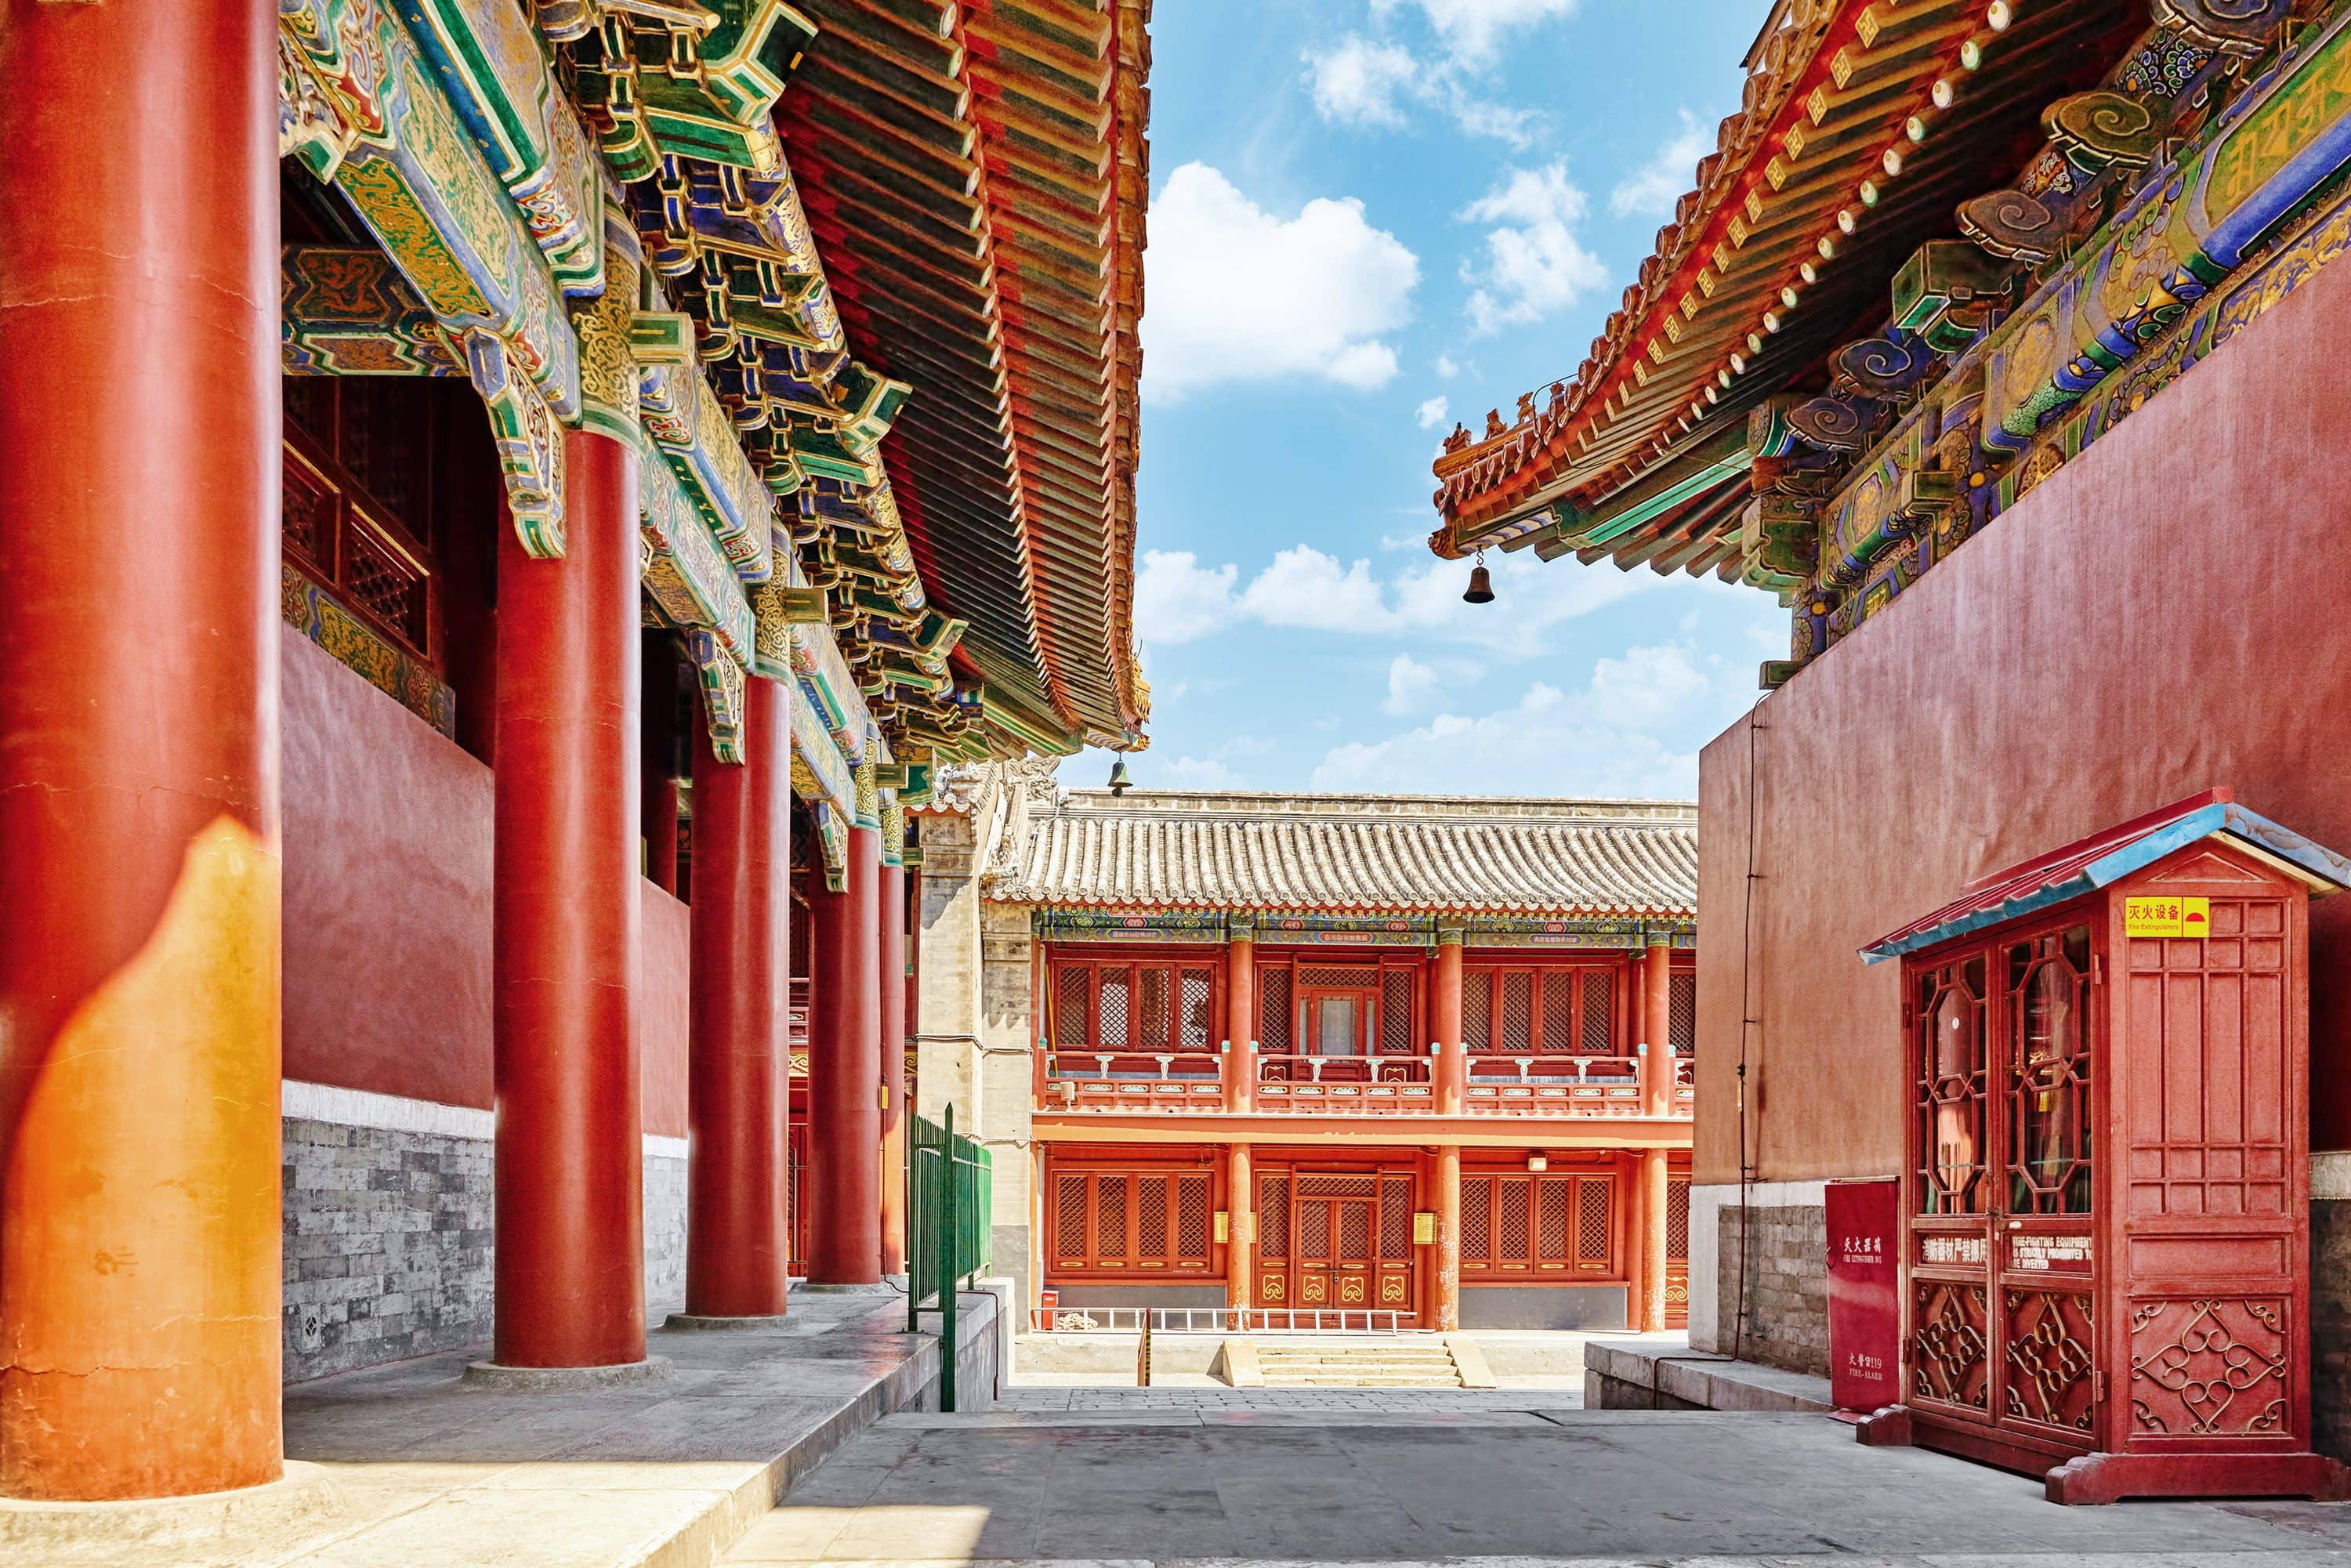 The yellow glazed tiles and red walls of Lama Temple, Beijing